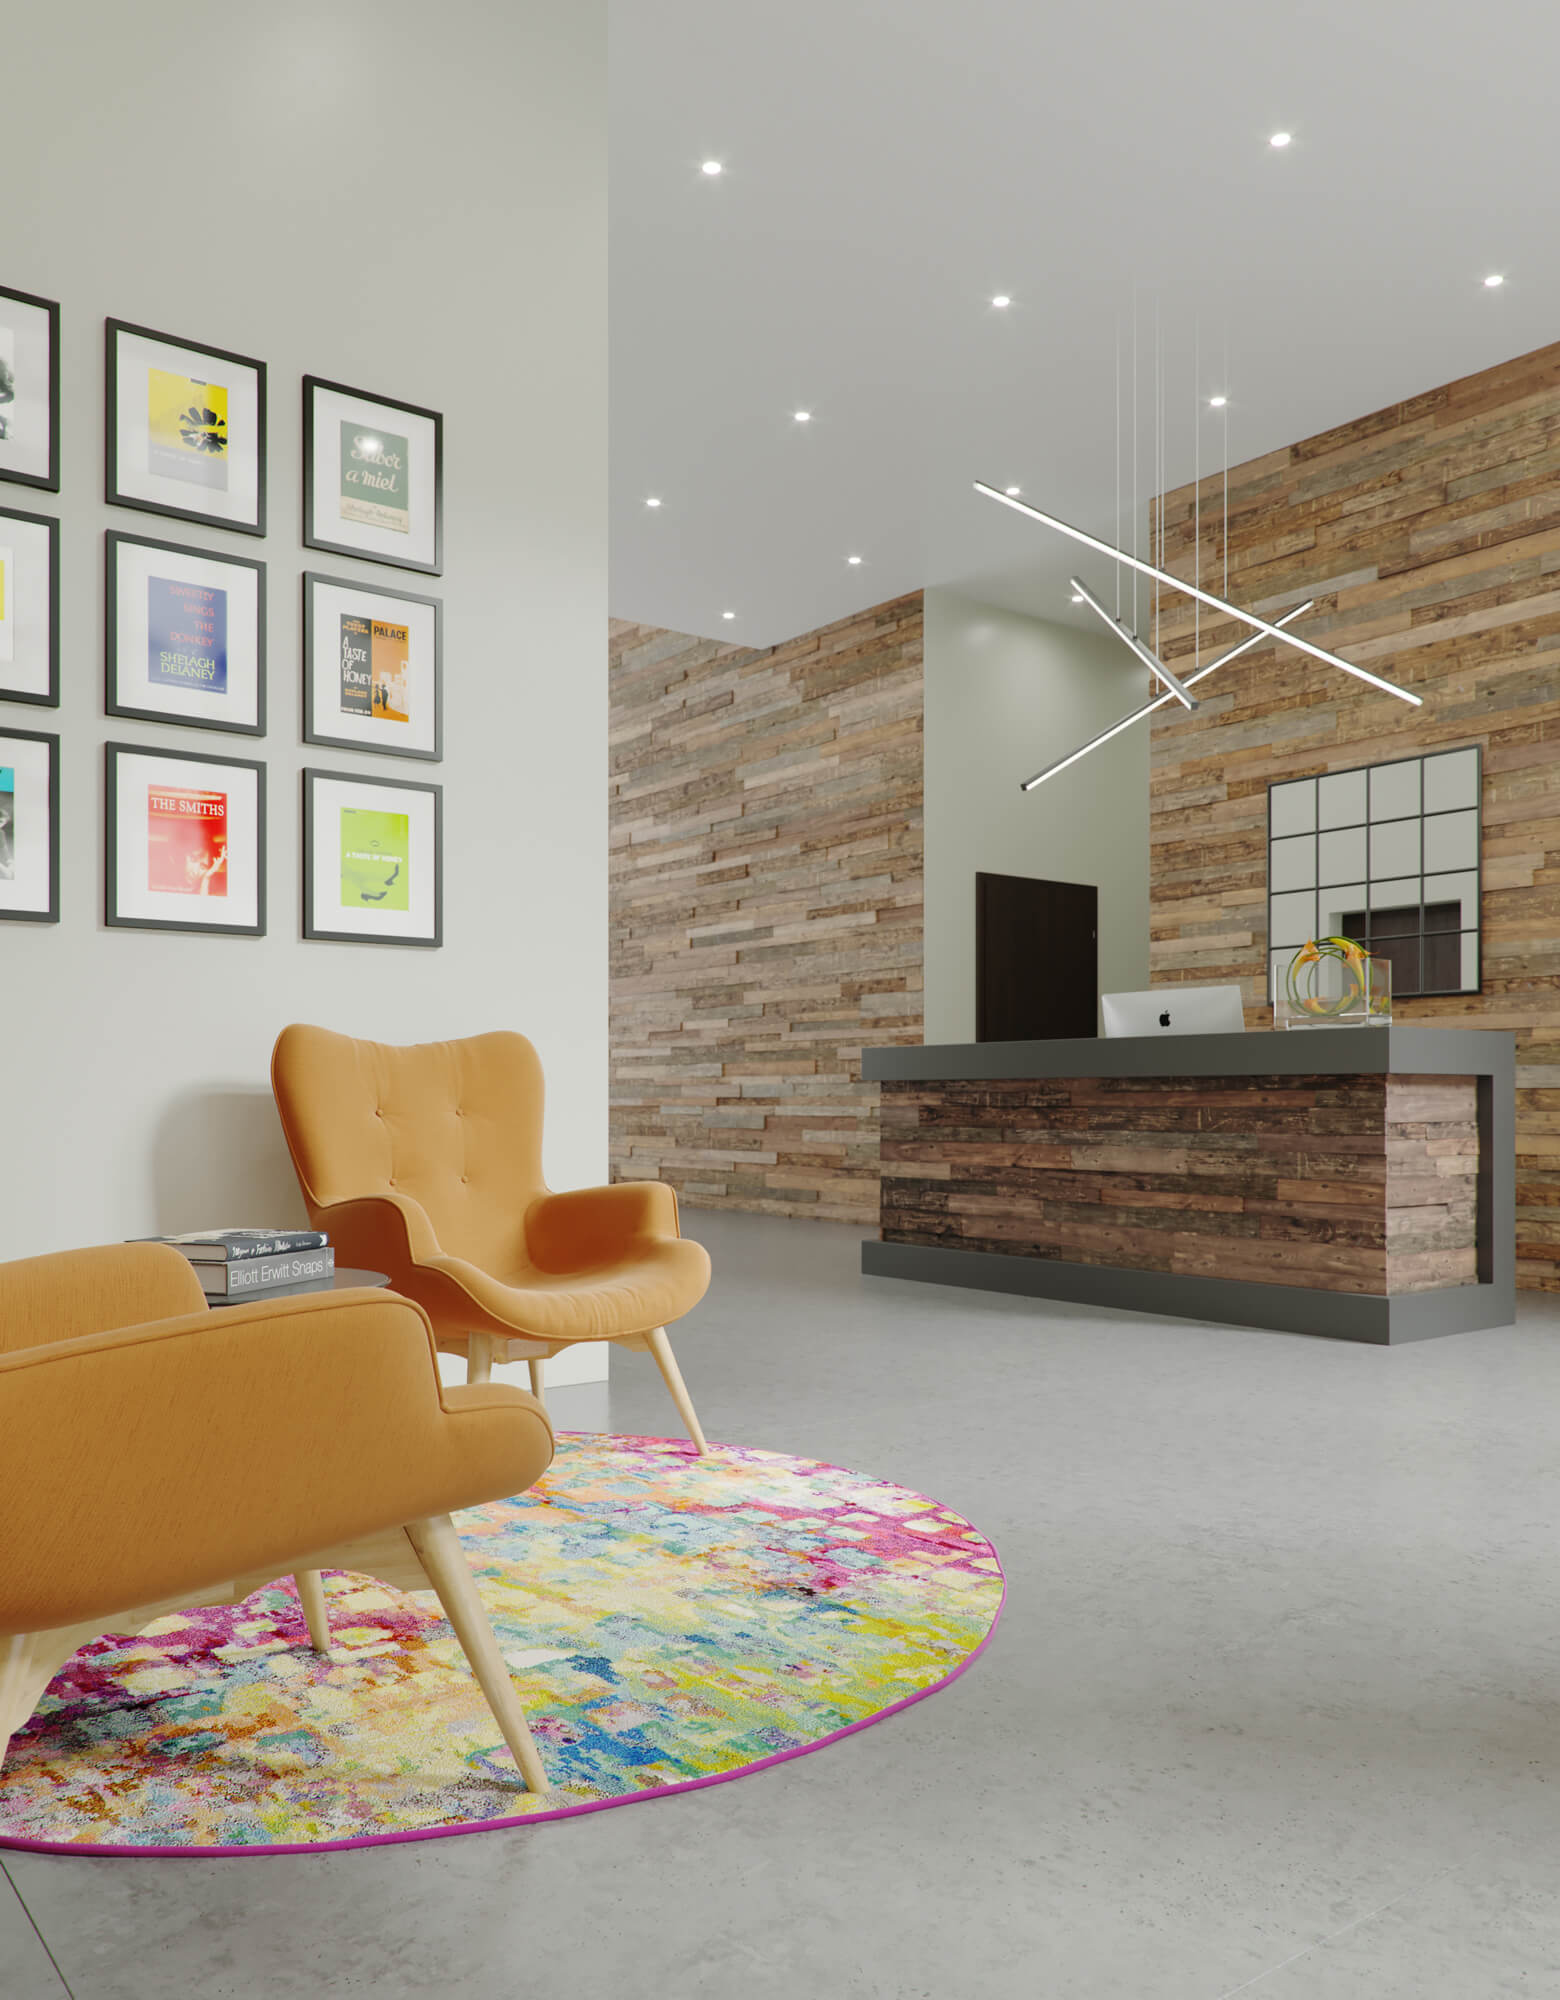 Urban CGI of Derwent Street high rise development, showing the lobby and entrance hall, with stylish seating areas to each side and colourful pictures on the wall.